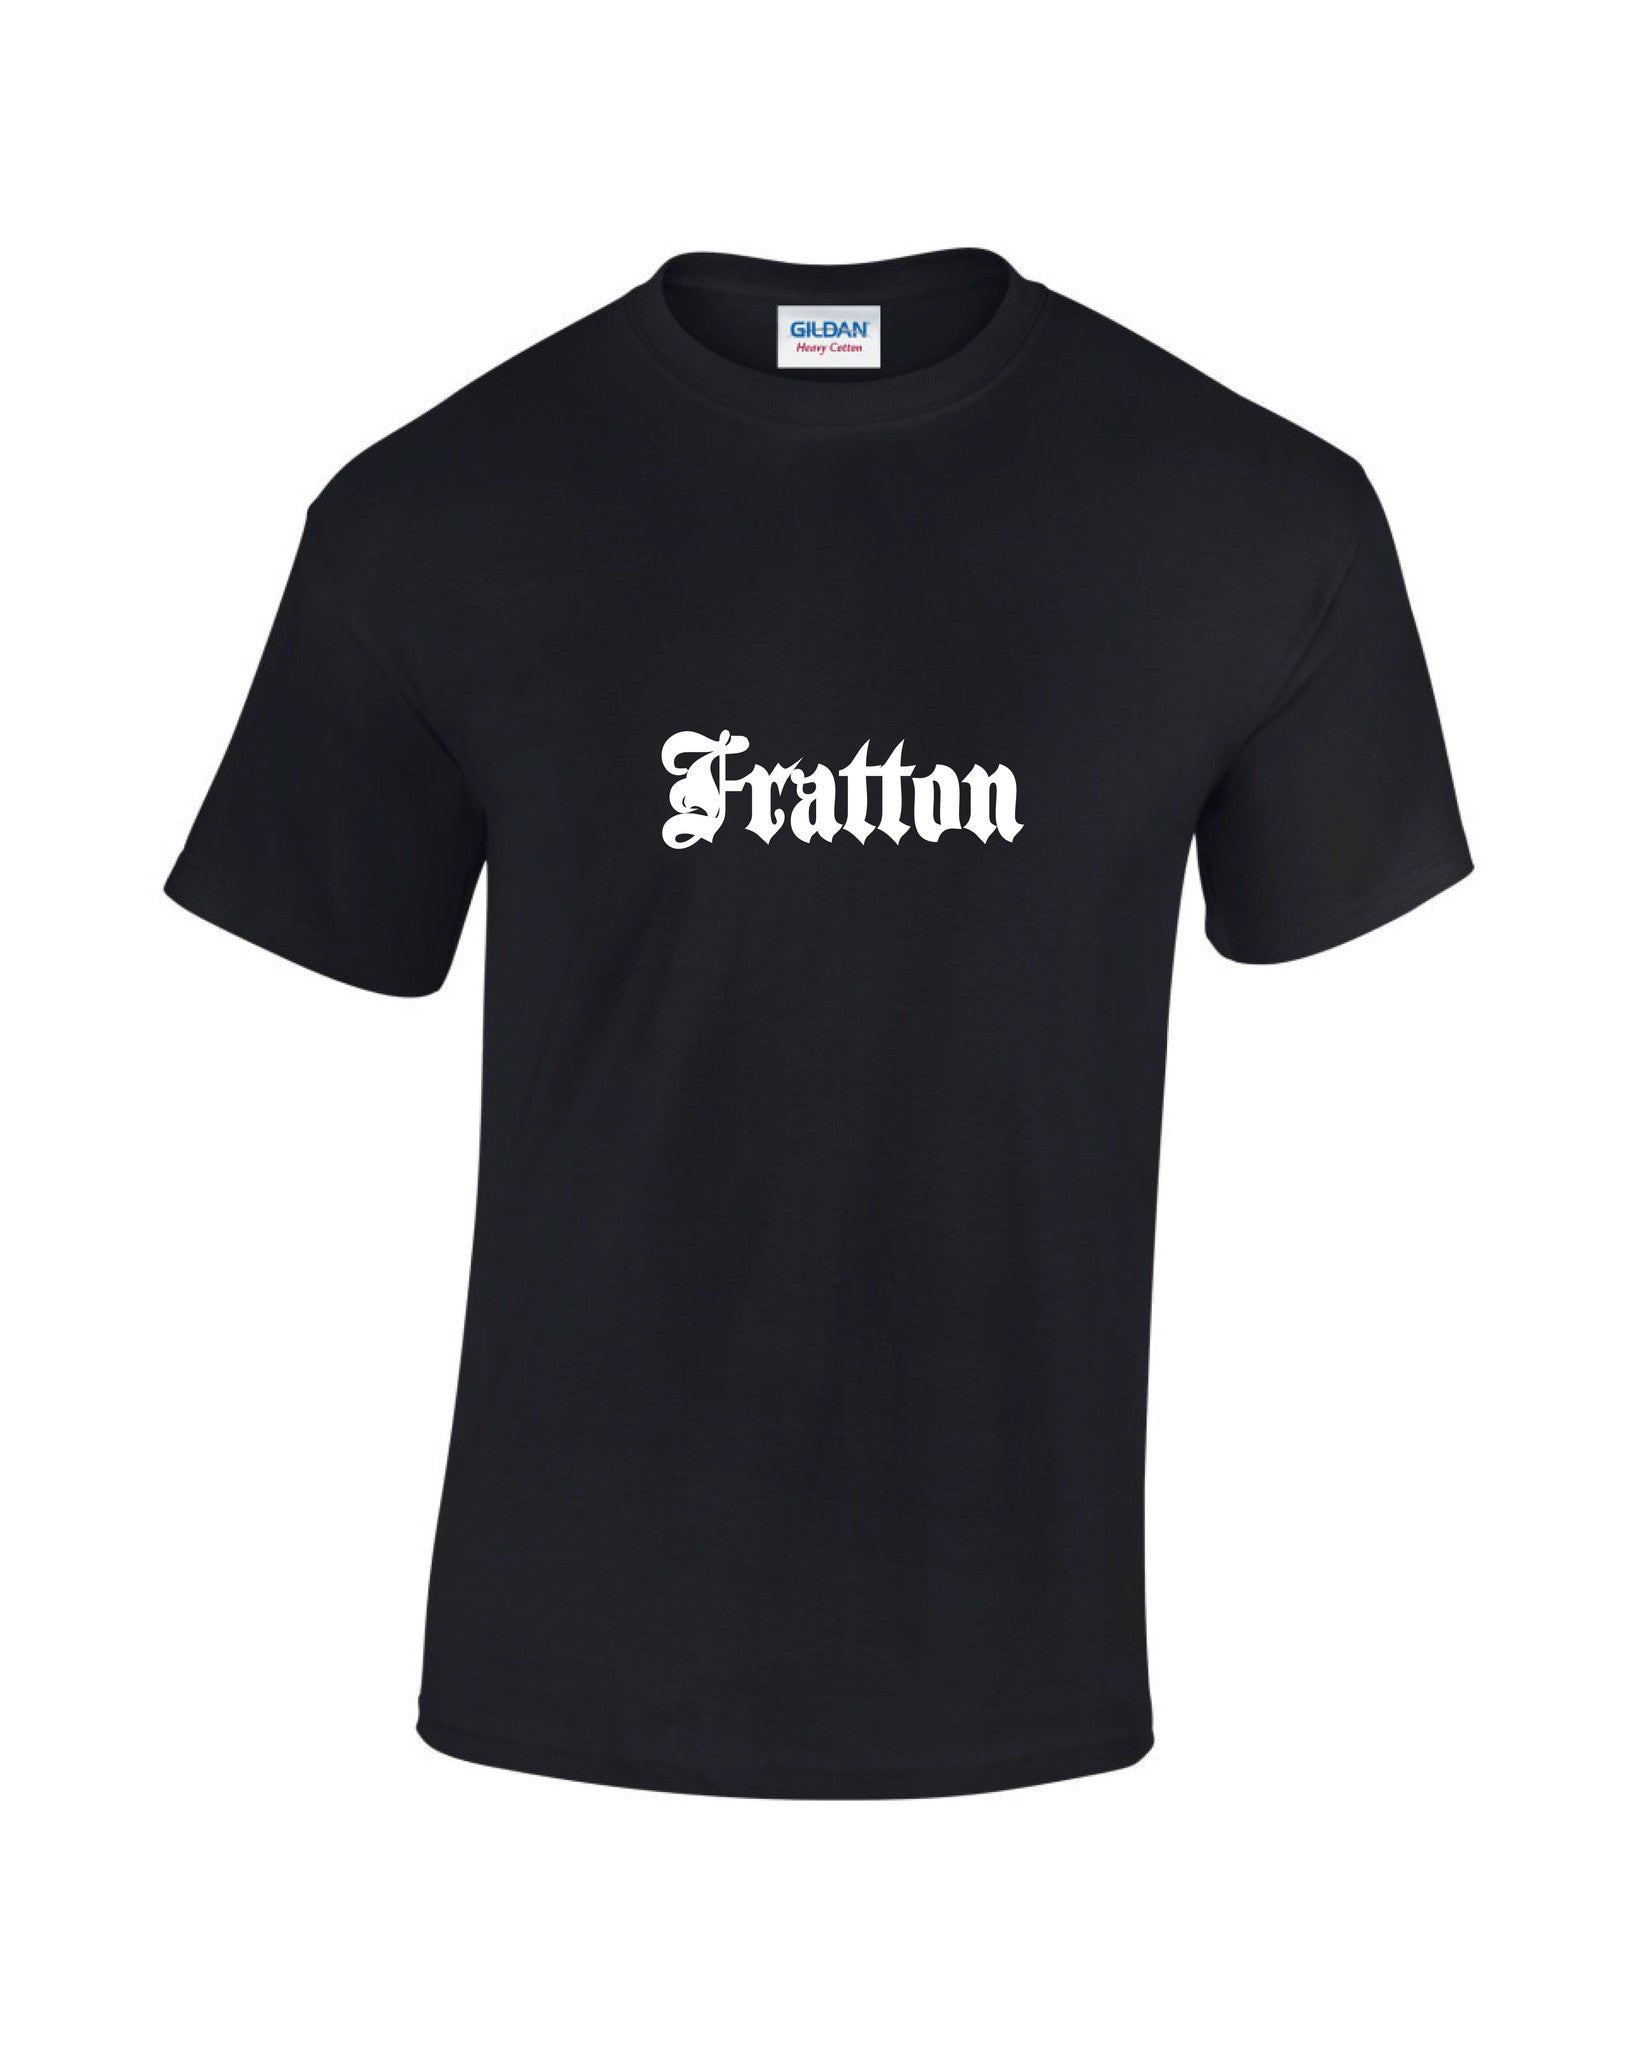 Hillfield Trading Gothic Fratton Mens T Shirt